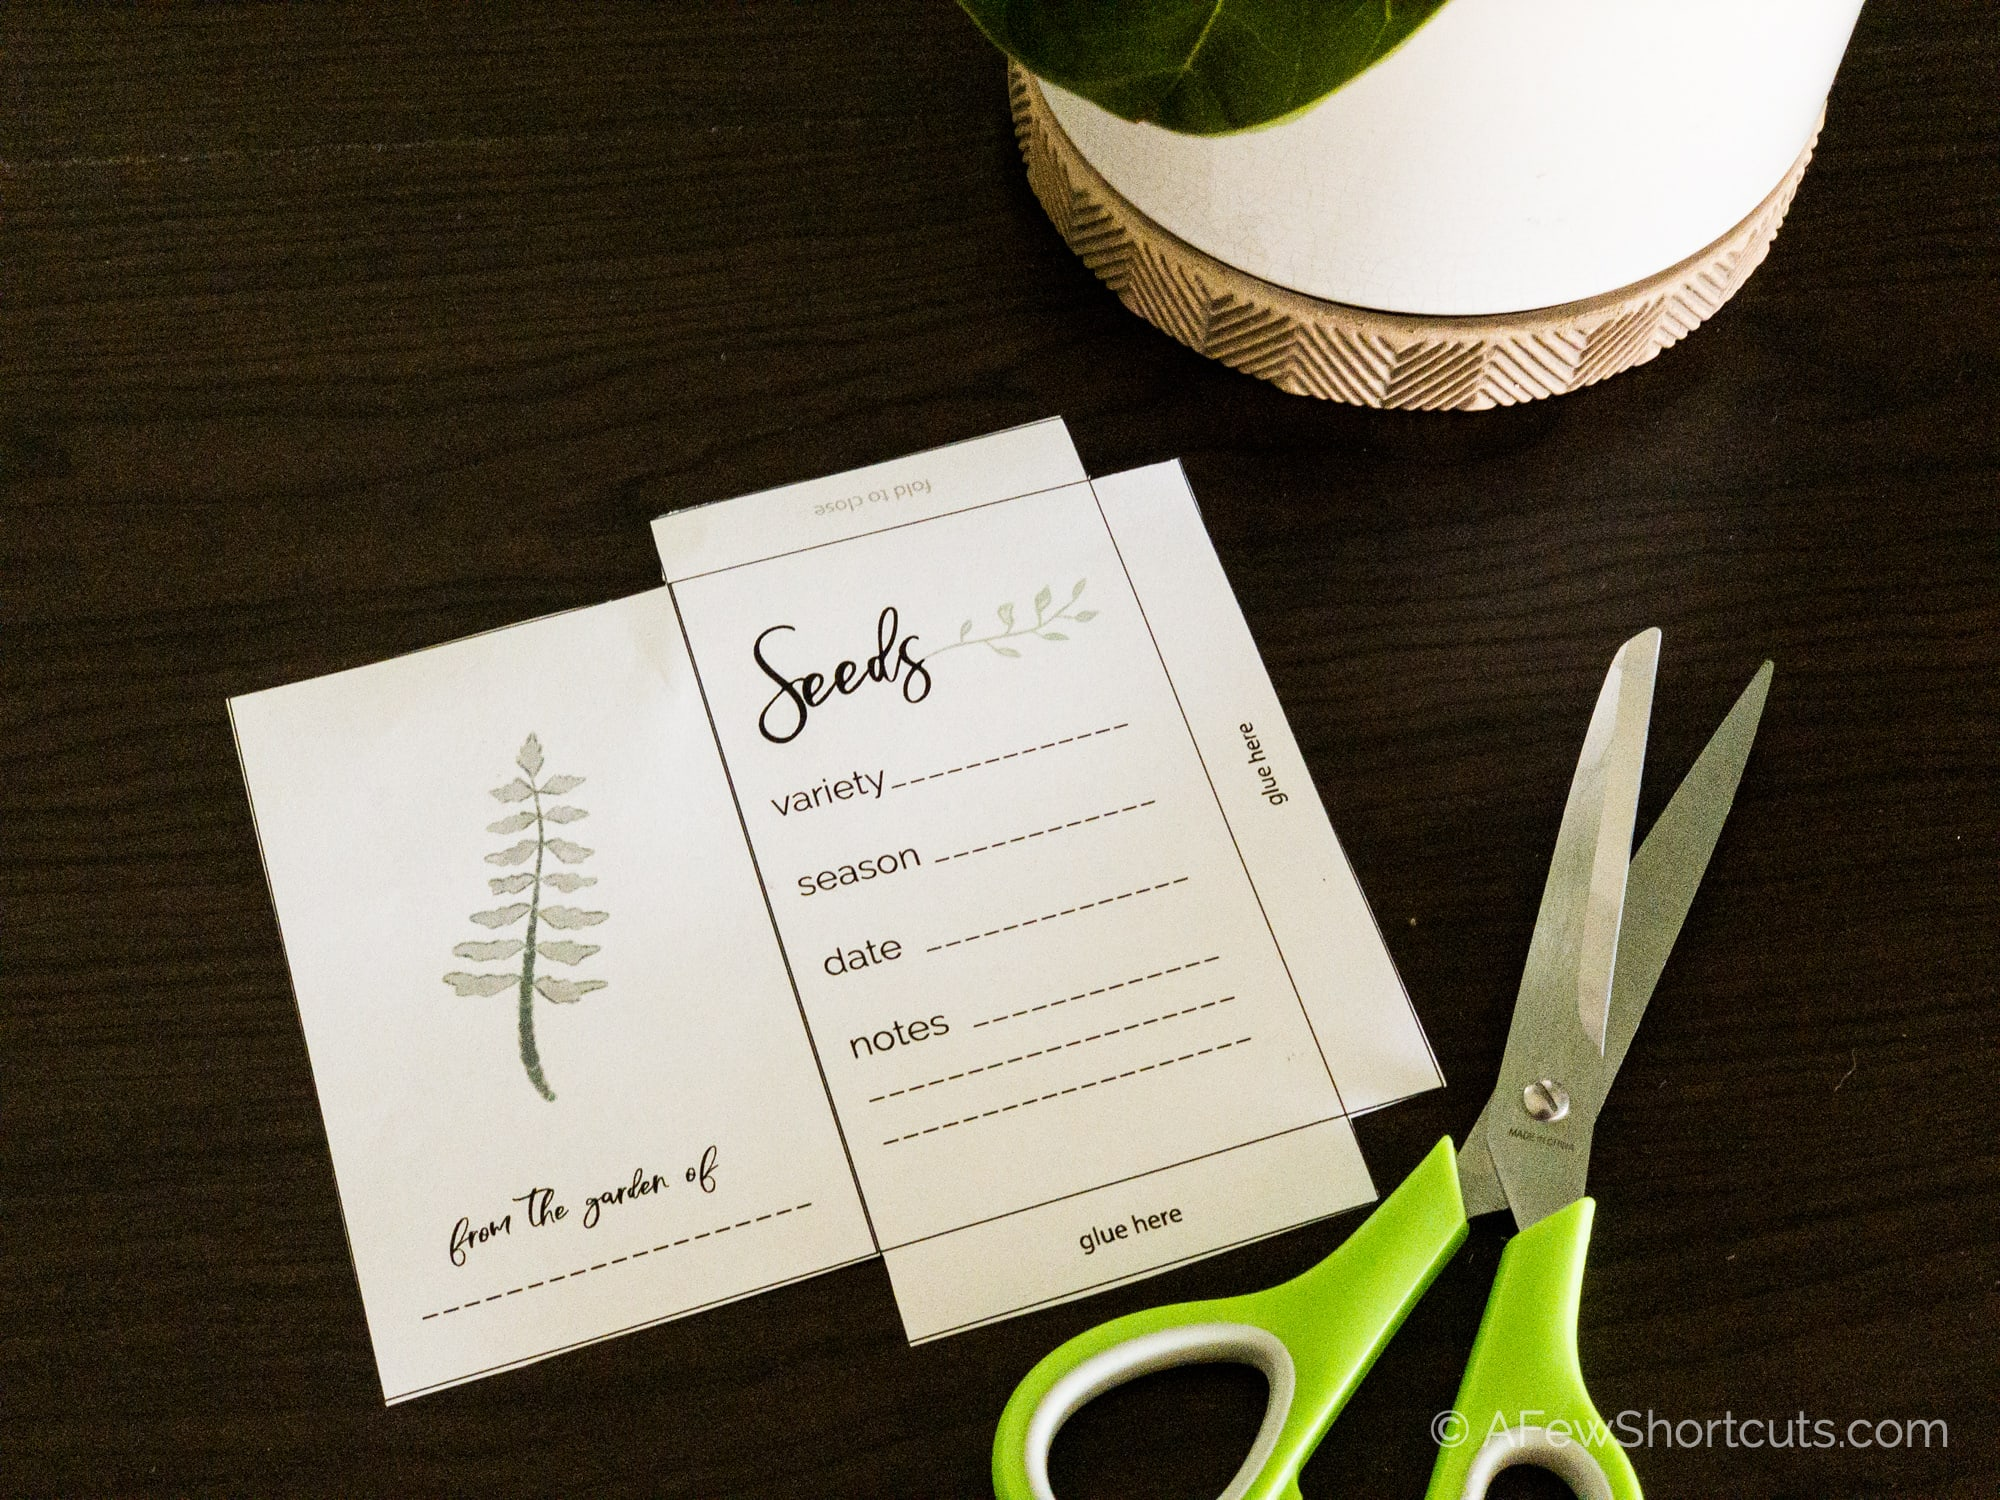 cut out seed packet template and scissors